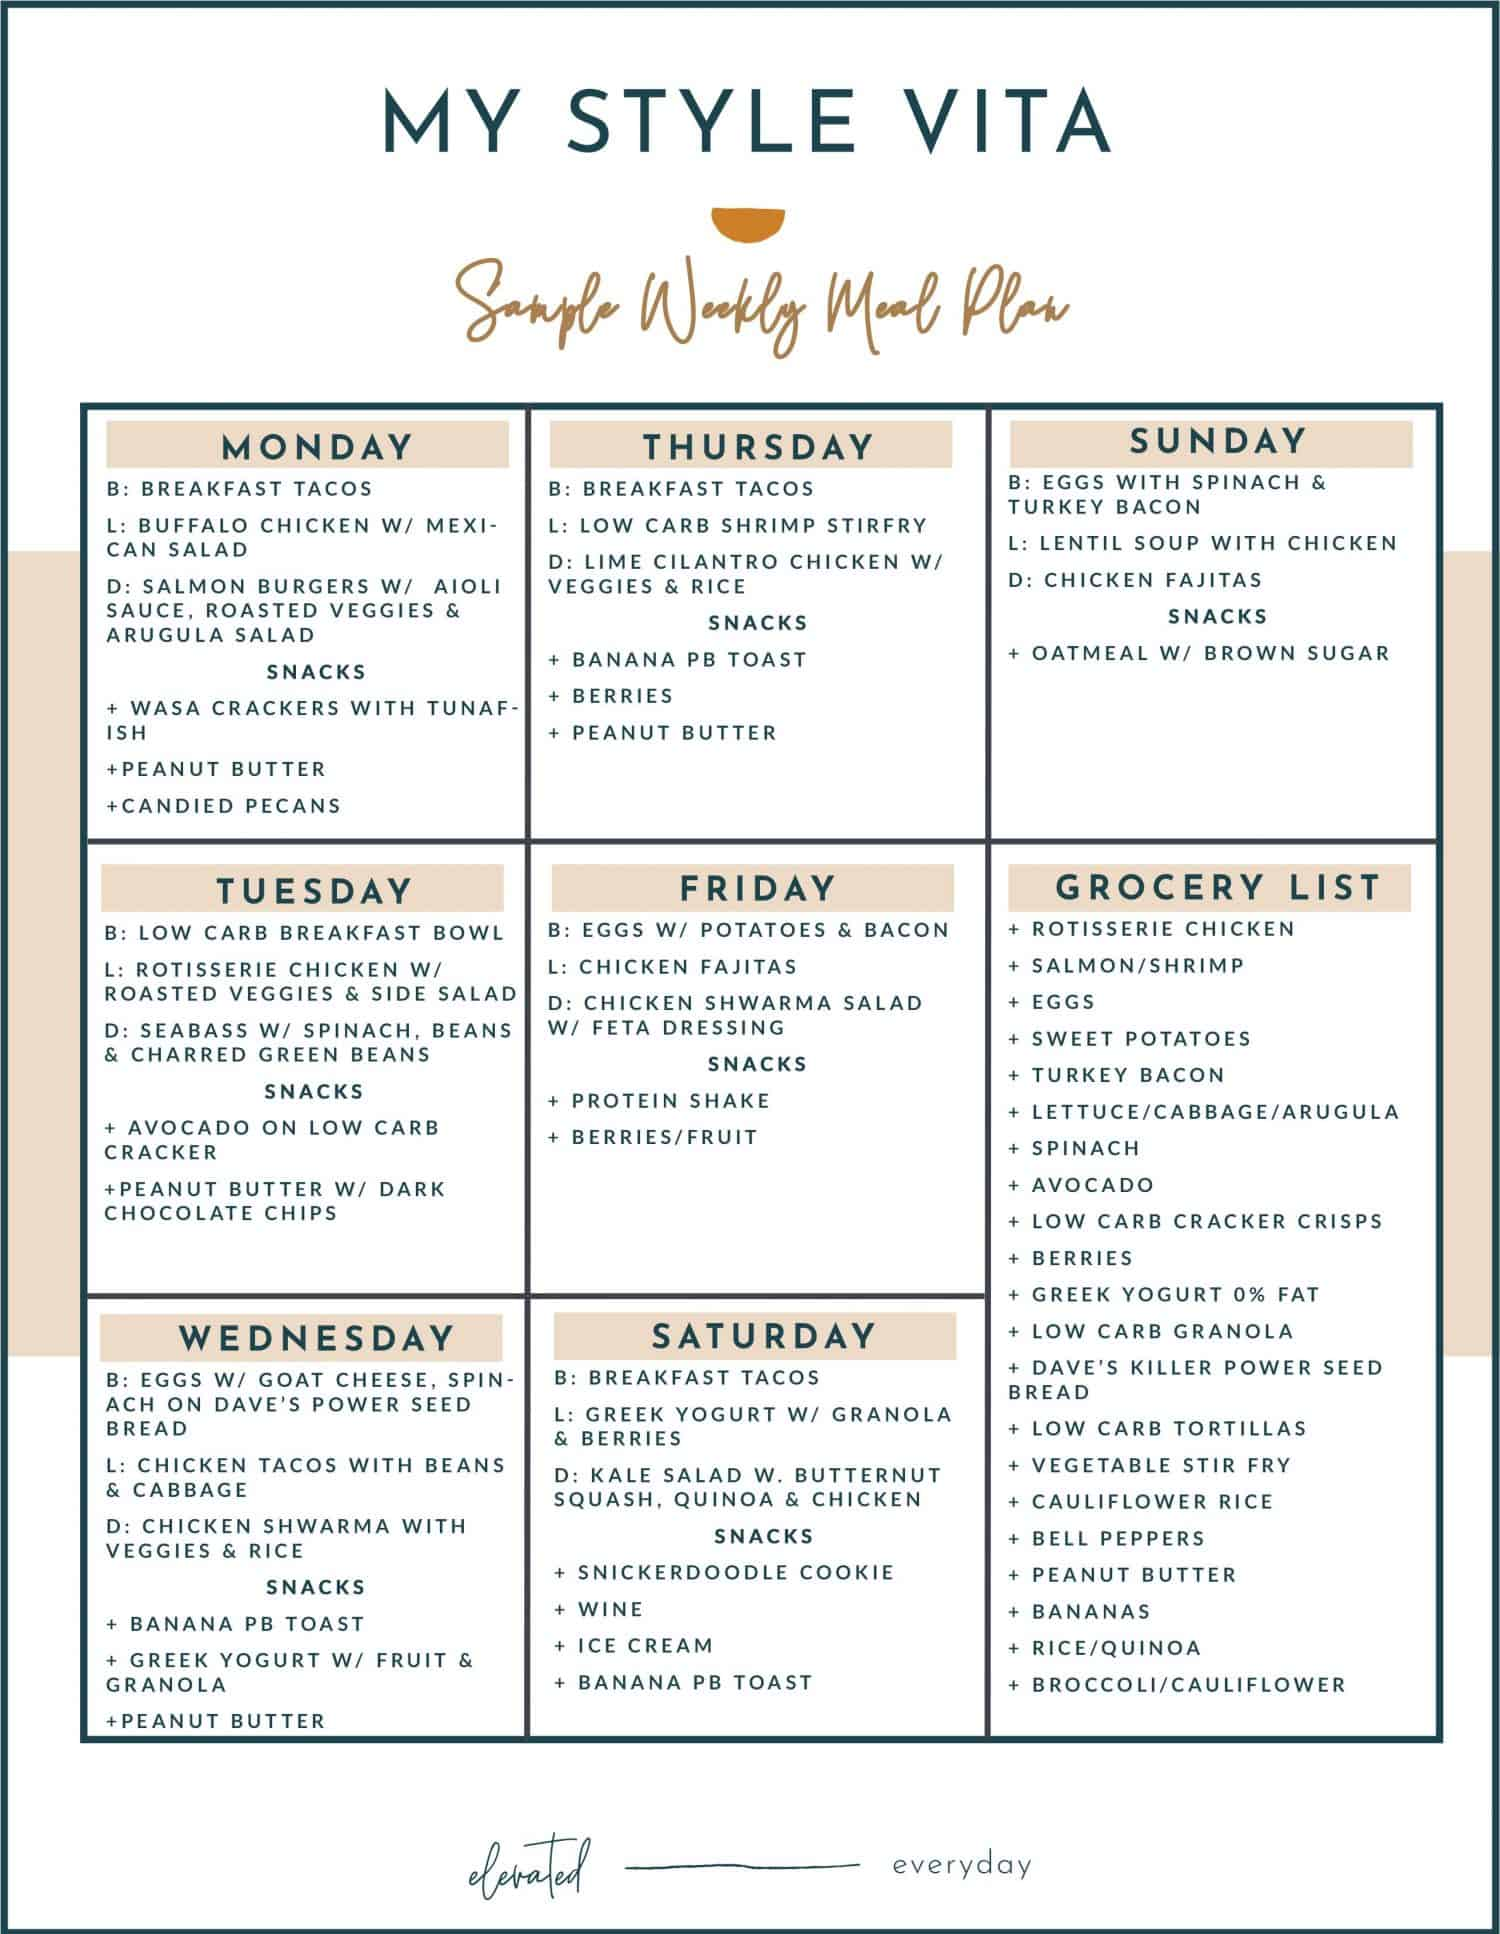 Sample Weekly Meal Plan & Grocery List - My Style Vita